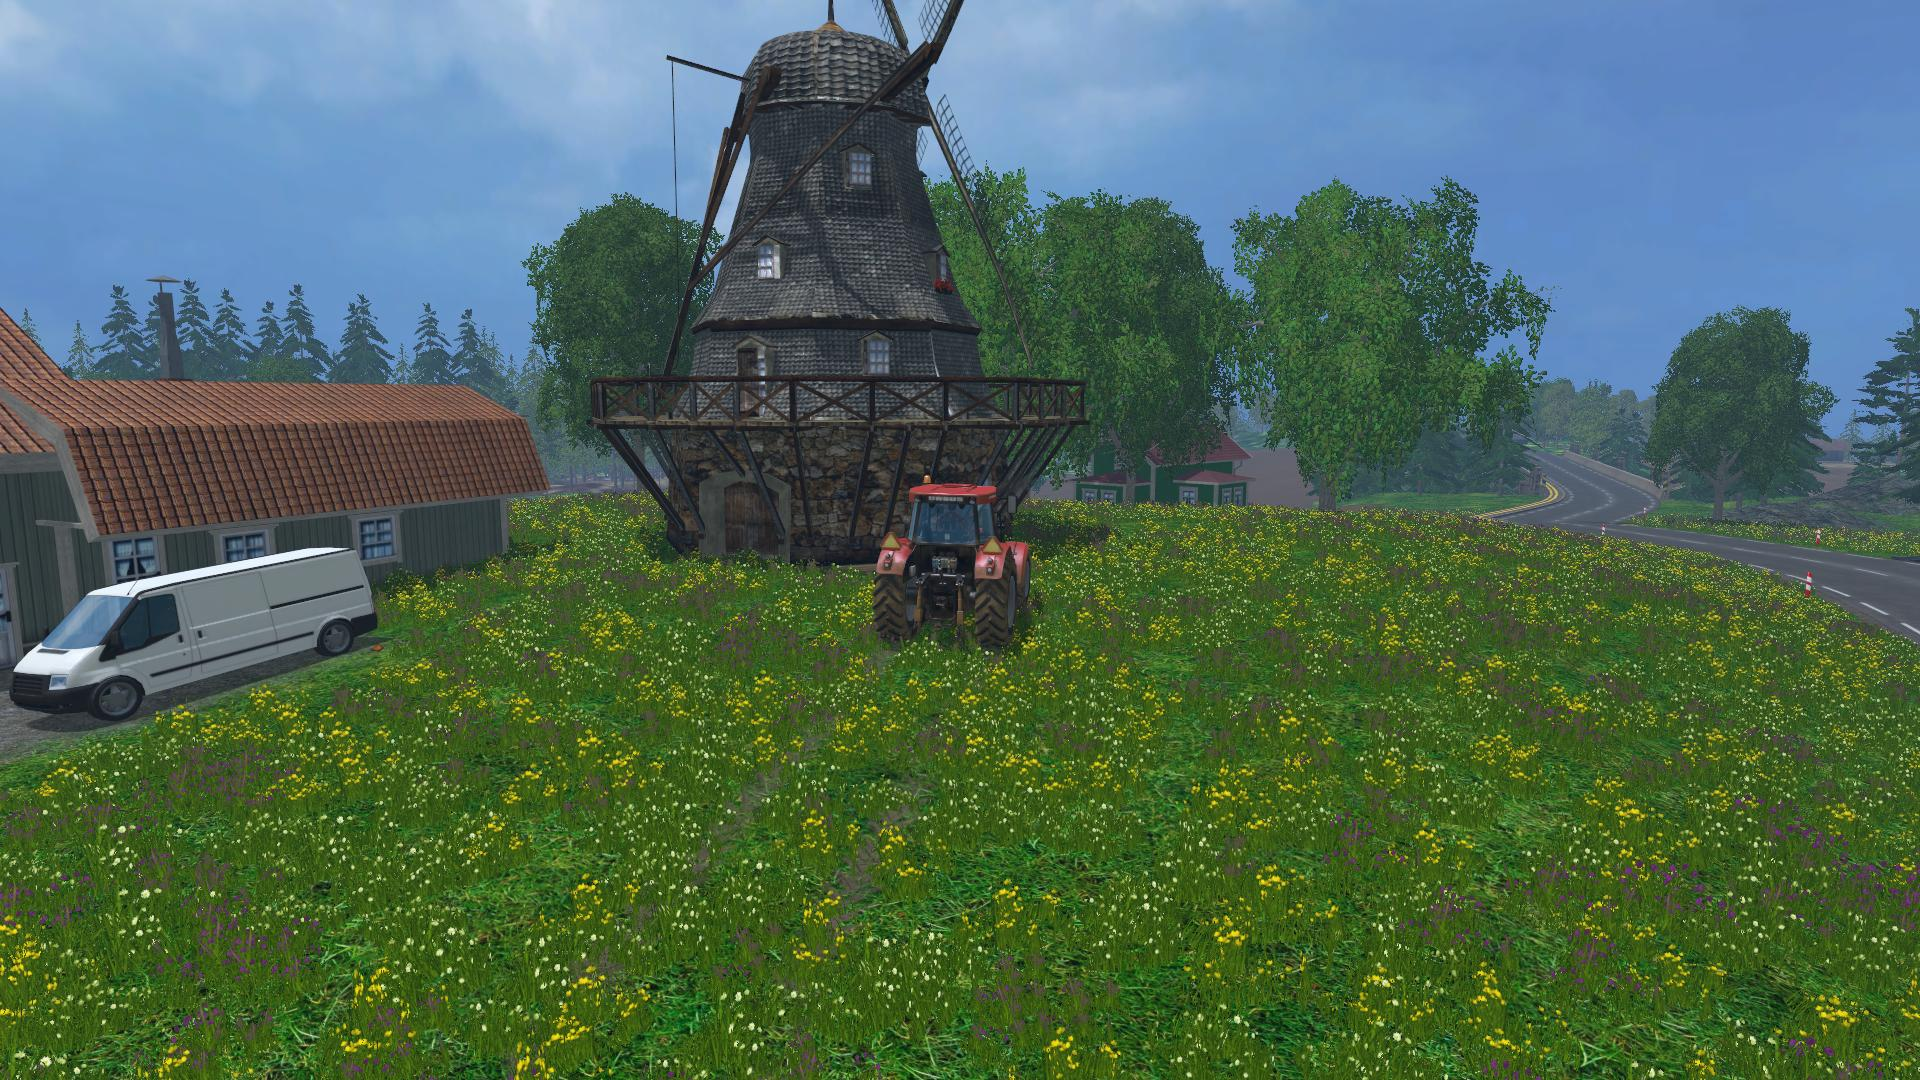 FarmingSimulator2015Game 2014 11 12 01 35 00 81 Farming Simulator 2015 HD Textures Pack v 2.0